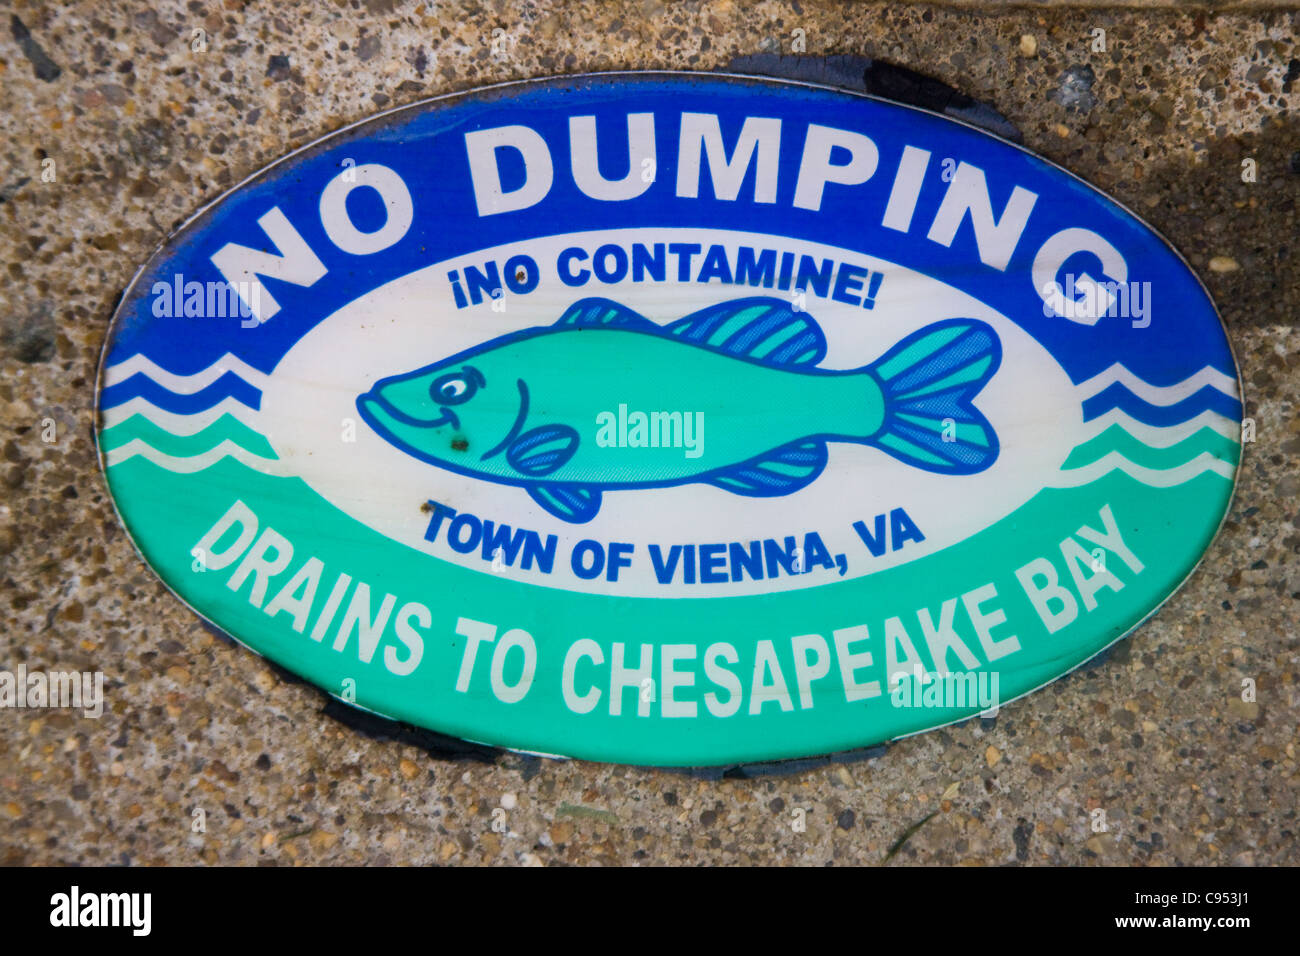 Town of Vienna Virginia No Dumping Drains to Chesapeake Bay marker on top of a storm water drainage catch basin - Stock Image